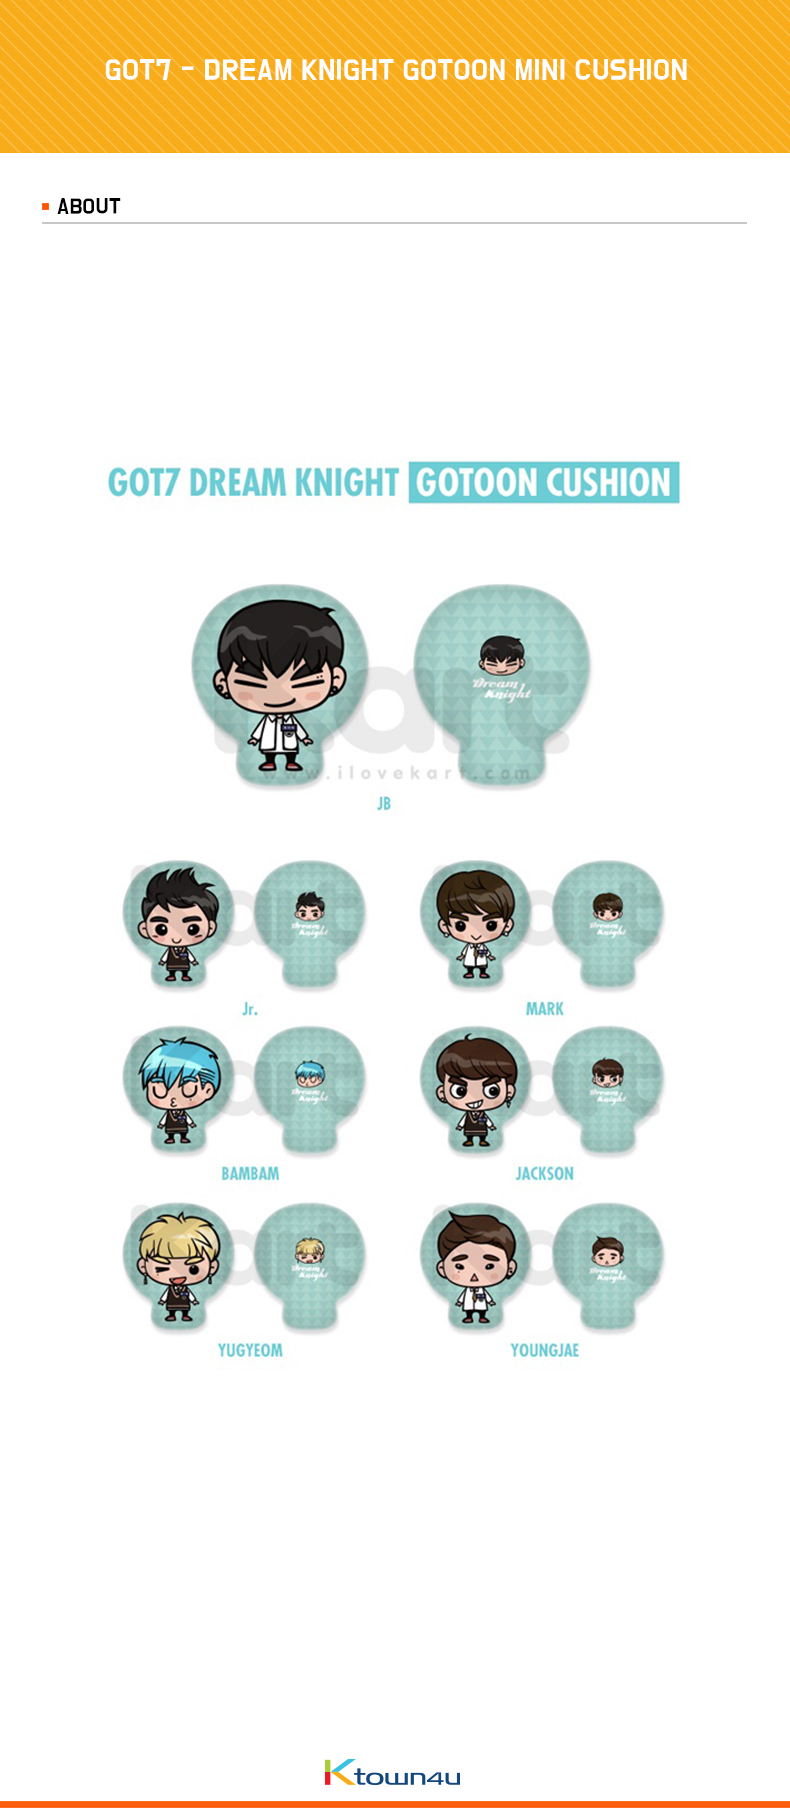 GOT7 (ガットセブン) - DREAM KNIGHT GOTOON MINI CUSHION